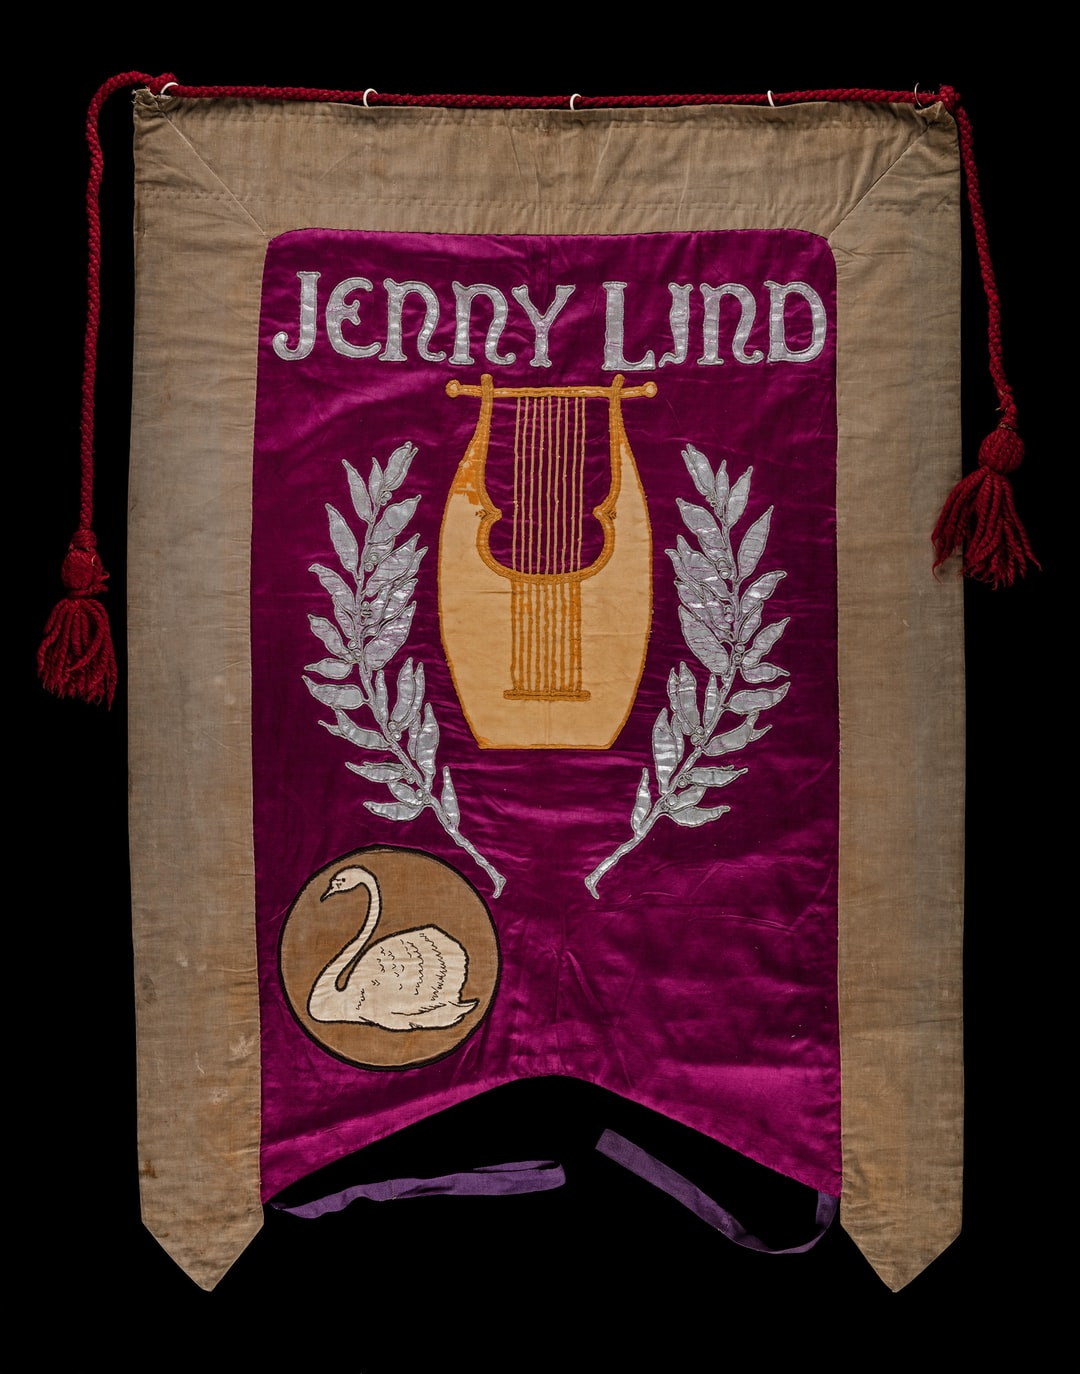 Suffrage banner, Jenny Lind, designed by Artists' Suffrage League for NUWSS march on 13 June 1908. TWL.1998.08